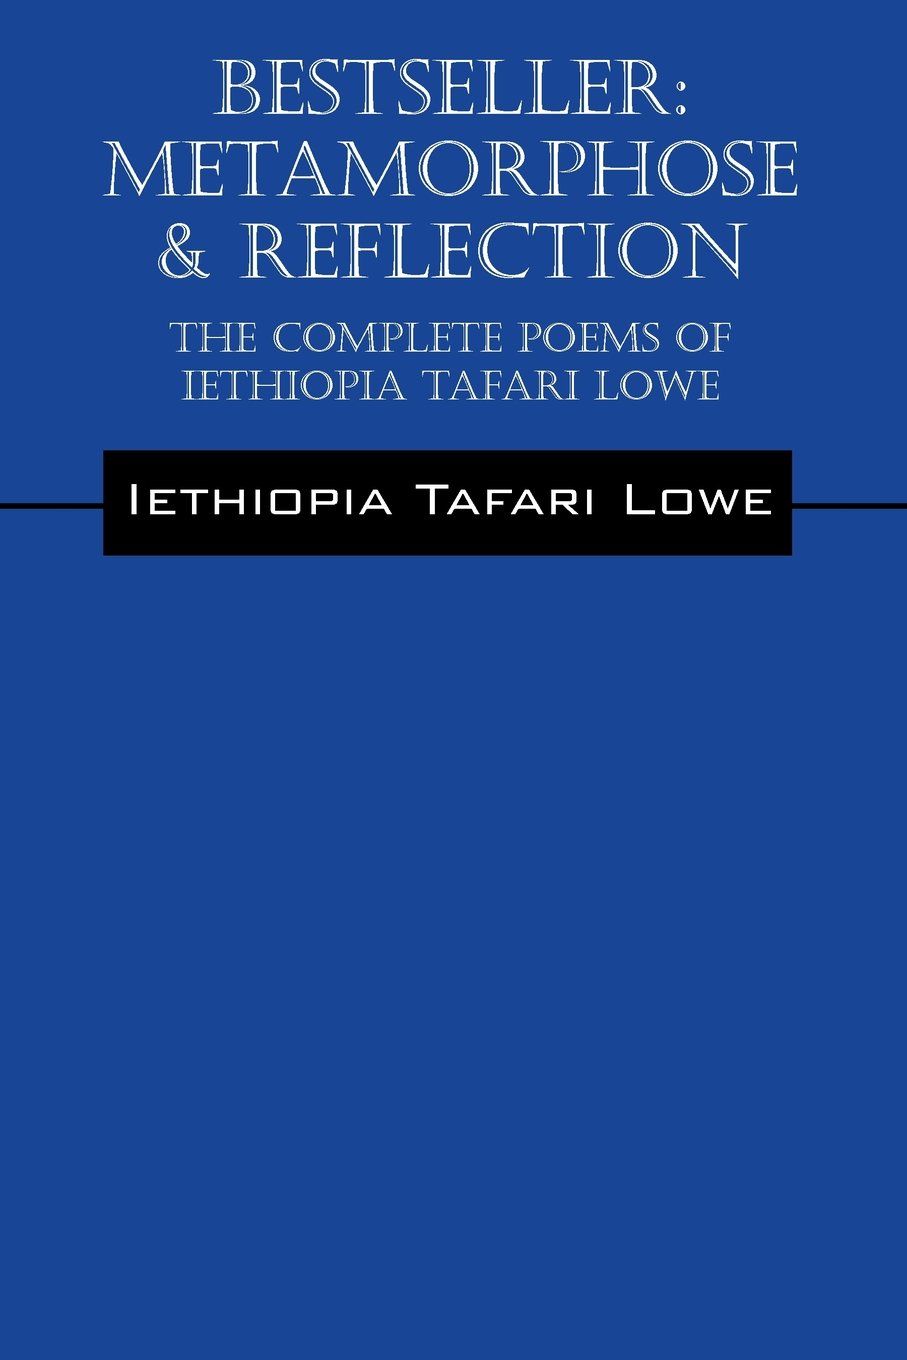 Bestseller: Metamorphose & Reflection - The Complete Poems of Iethiopia Tafari Lowe ebook